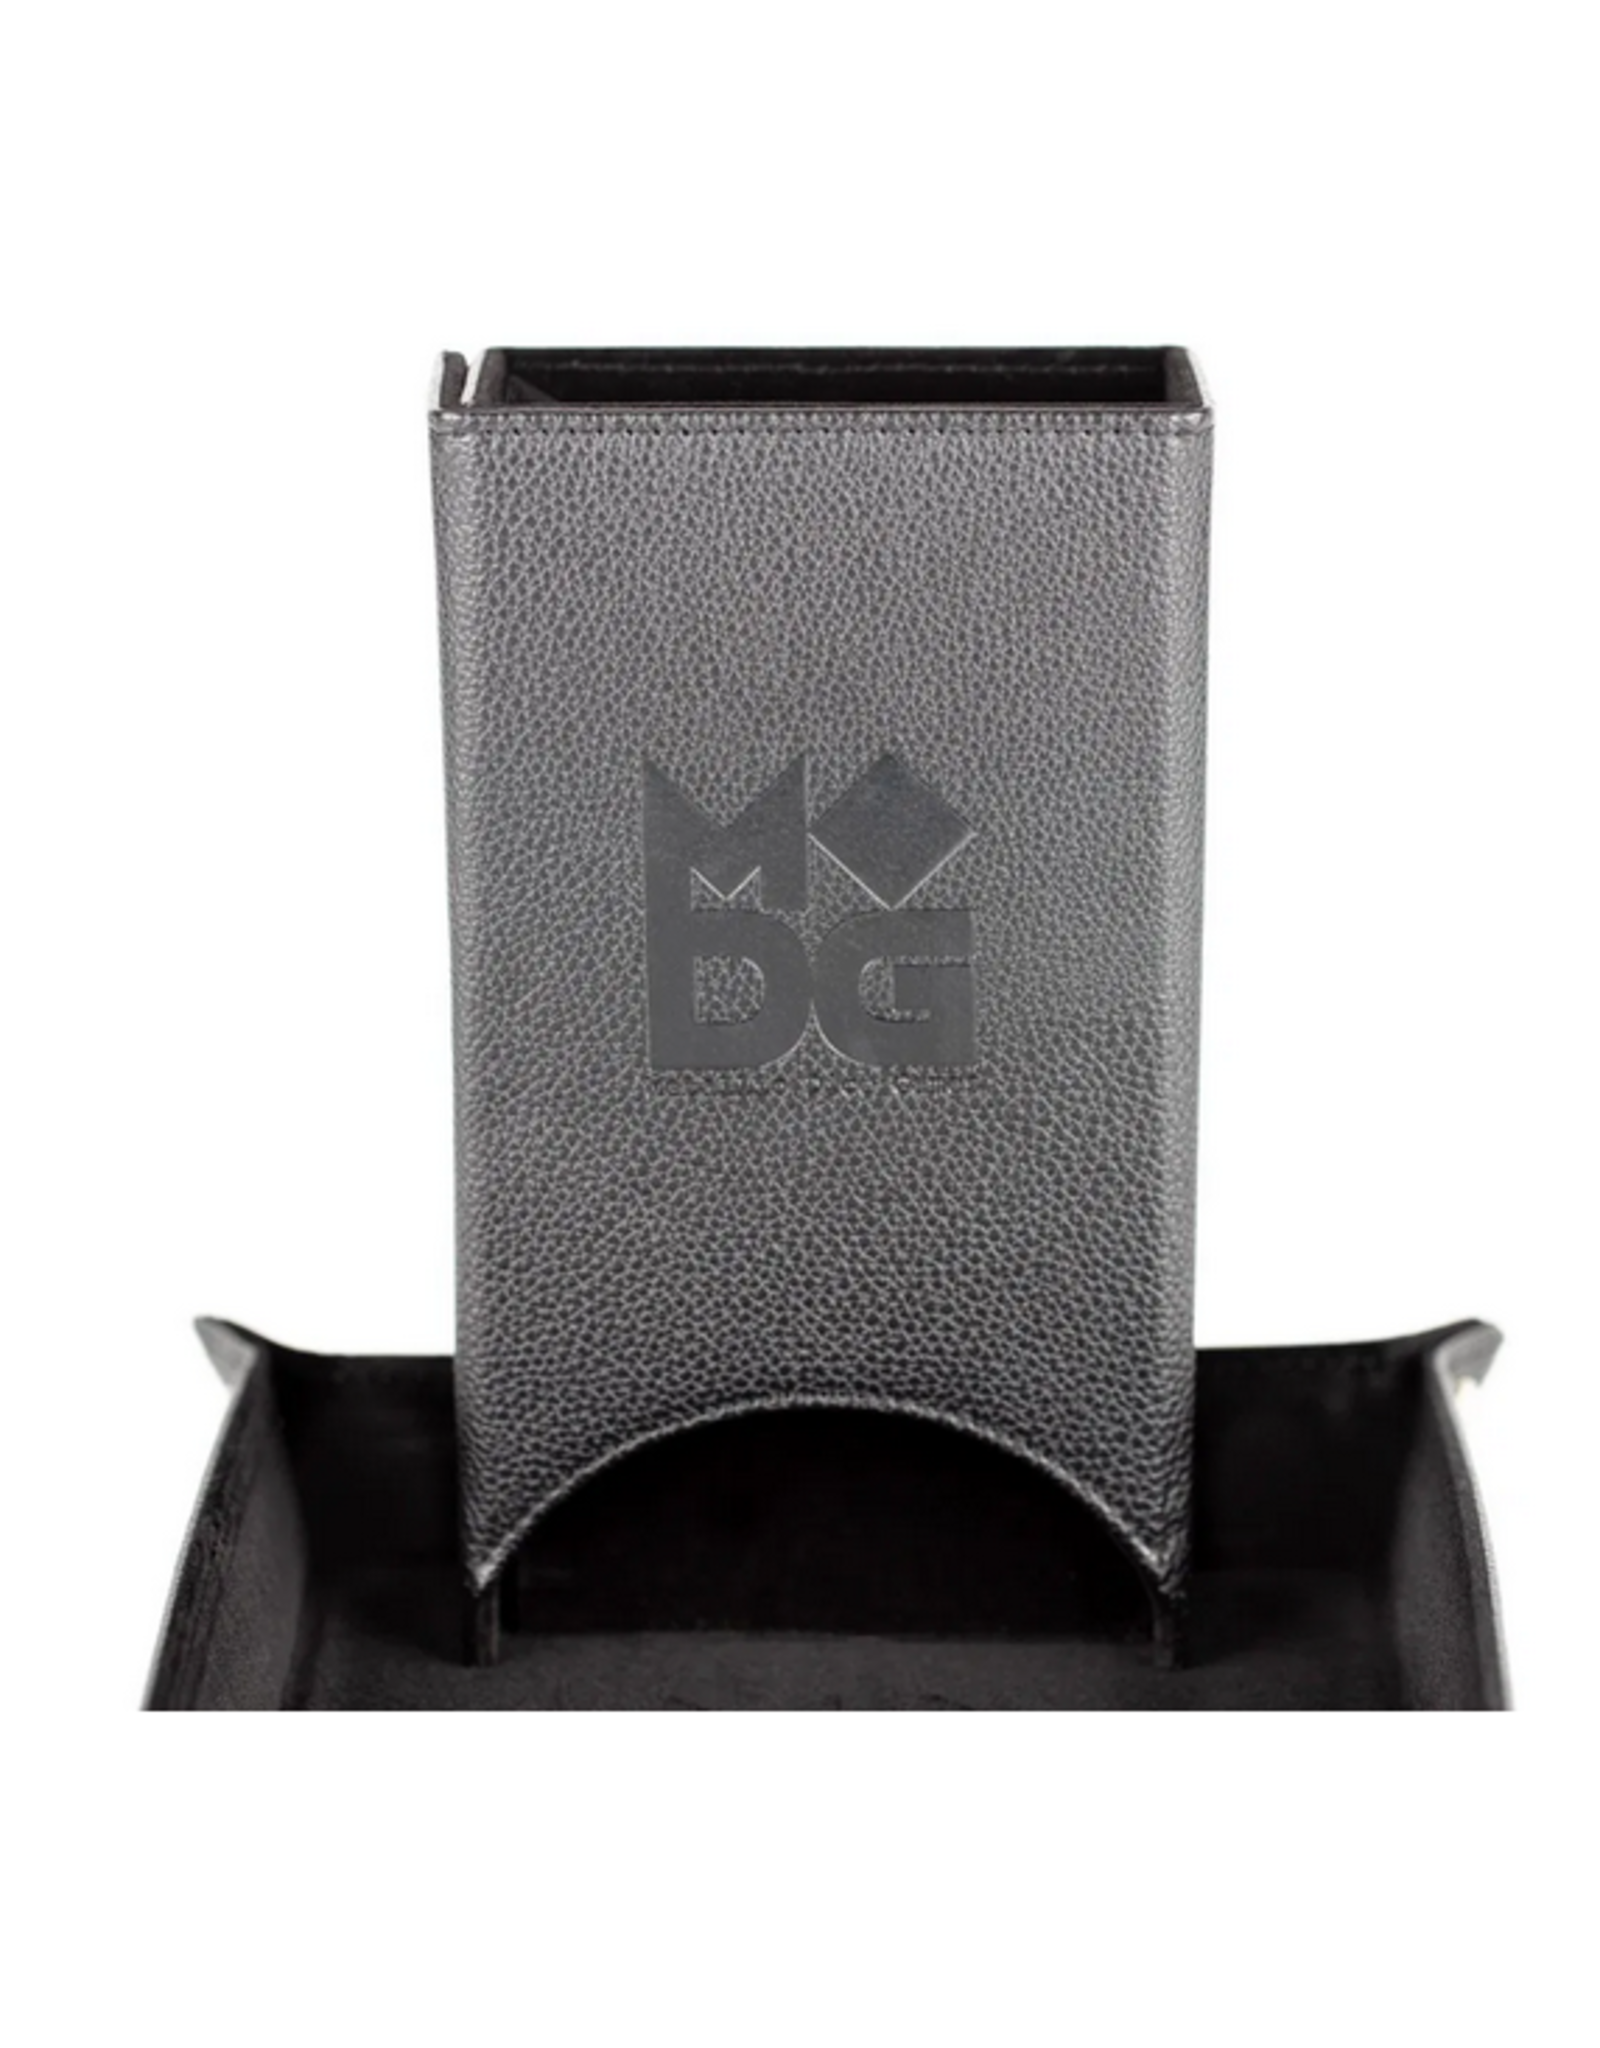 Dice Dice Tower: Fold Up Leather BK